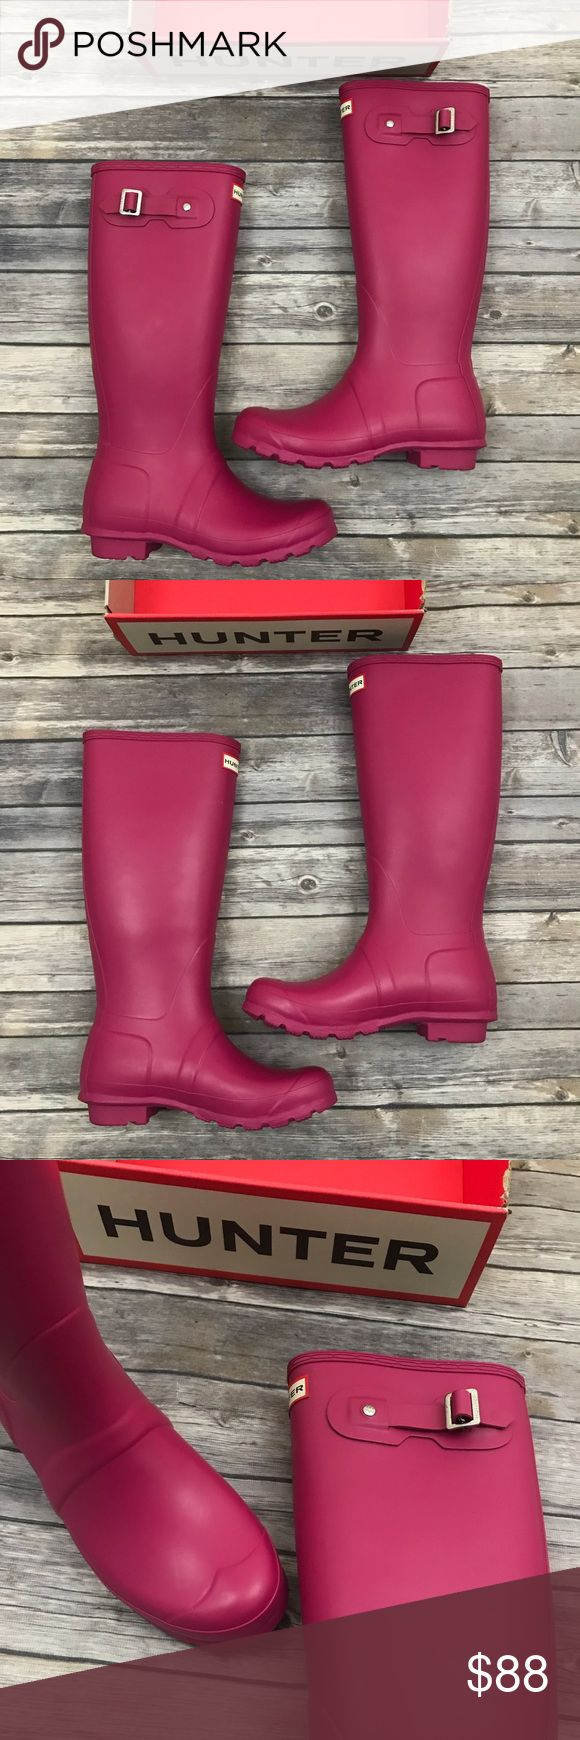 New Hunter Boots Original Tall Peppercorn Boots Hunter Boots Original Tall Matte Peppercorn Rain Boots •New in box (top of box is missing) •Size 7 •Retails for $165  Check out my other listings- Nike, adidas, Michael Kors, Hunter Boots, Kate Spade, Miss Me, Rock Revival, Coach, Wildfox, Victoria's Secret, PINK, True Religion, Ugg Australia, Free People and more! Hunter Shoes Winter & Rain Boots